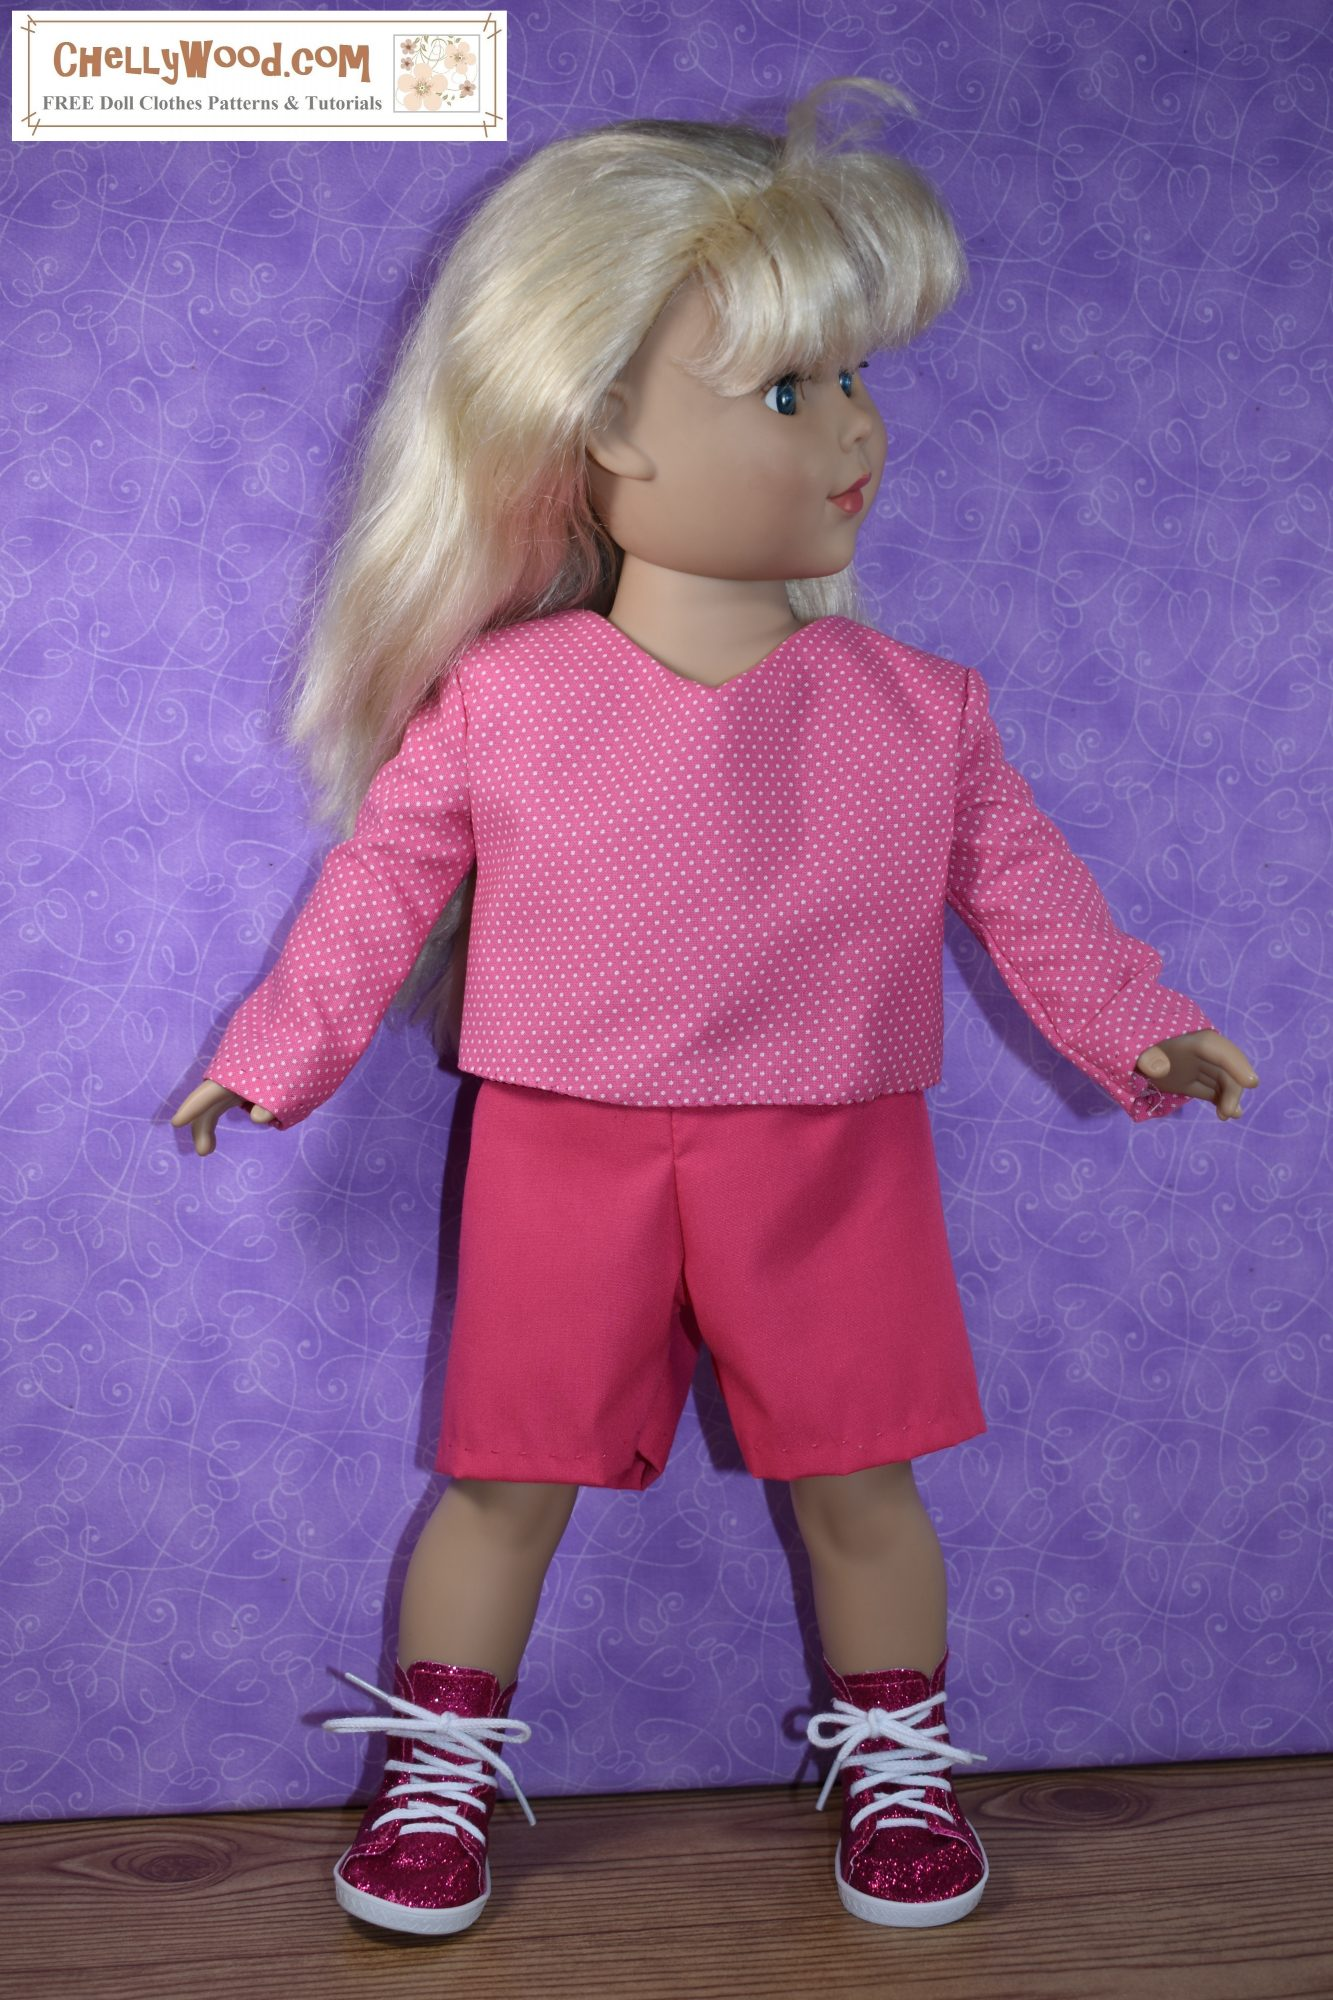 """This photo shows an 18"""" doll wearing a pair of handmade solid pink shorts with a long-sleeved pink-and-white polka dot shirt that has a slight V-neck. The watermark on this photo tells you where you can go to download the free printable PDF sewing patterns for making 18"""" doll clothes including this complete outfit of shorts and a shirt to fit dolls in the 18 inch (45 cm to 46 cm) size range; the website is ChellyWood.com"""